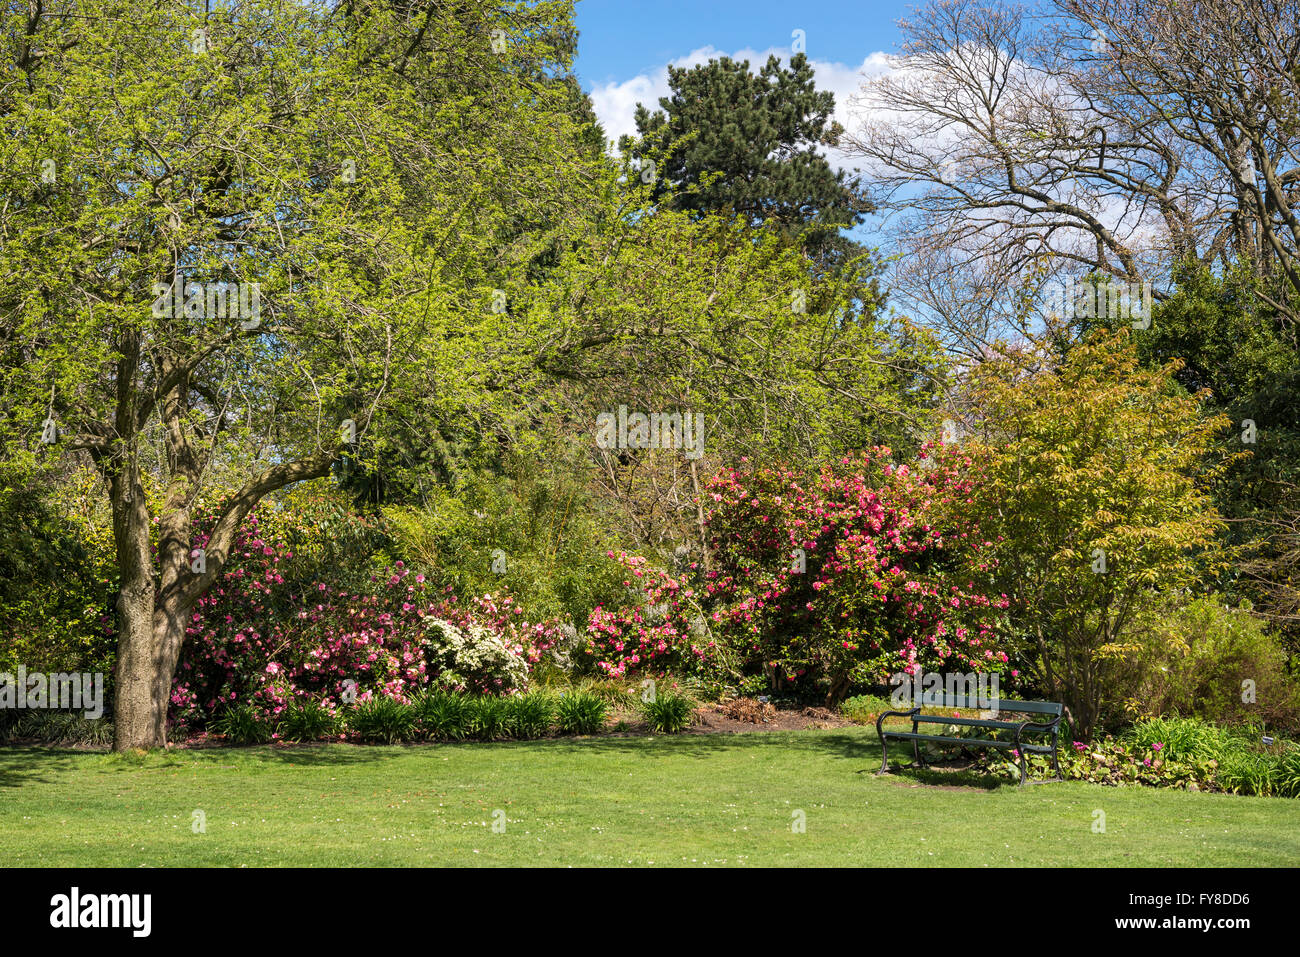 Springtime at Sheffield botanical gardens, Yorkshire, England. A green bench beneath flowering shrubs and trees. - Stock Image